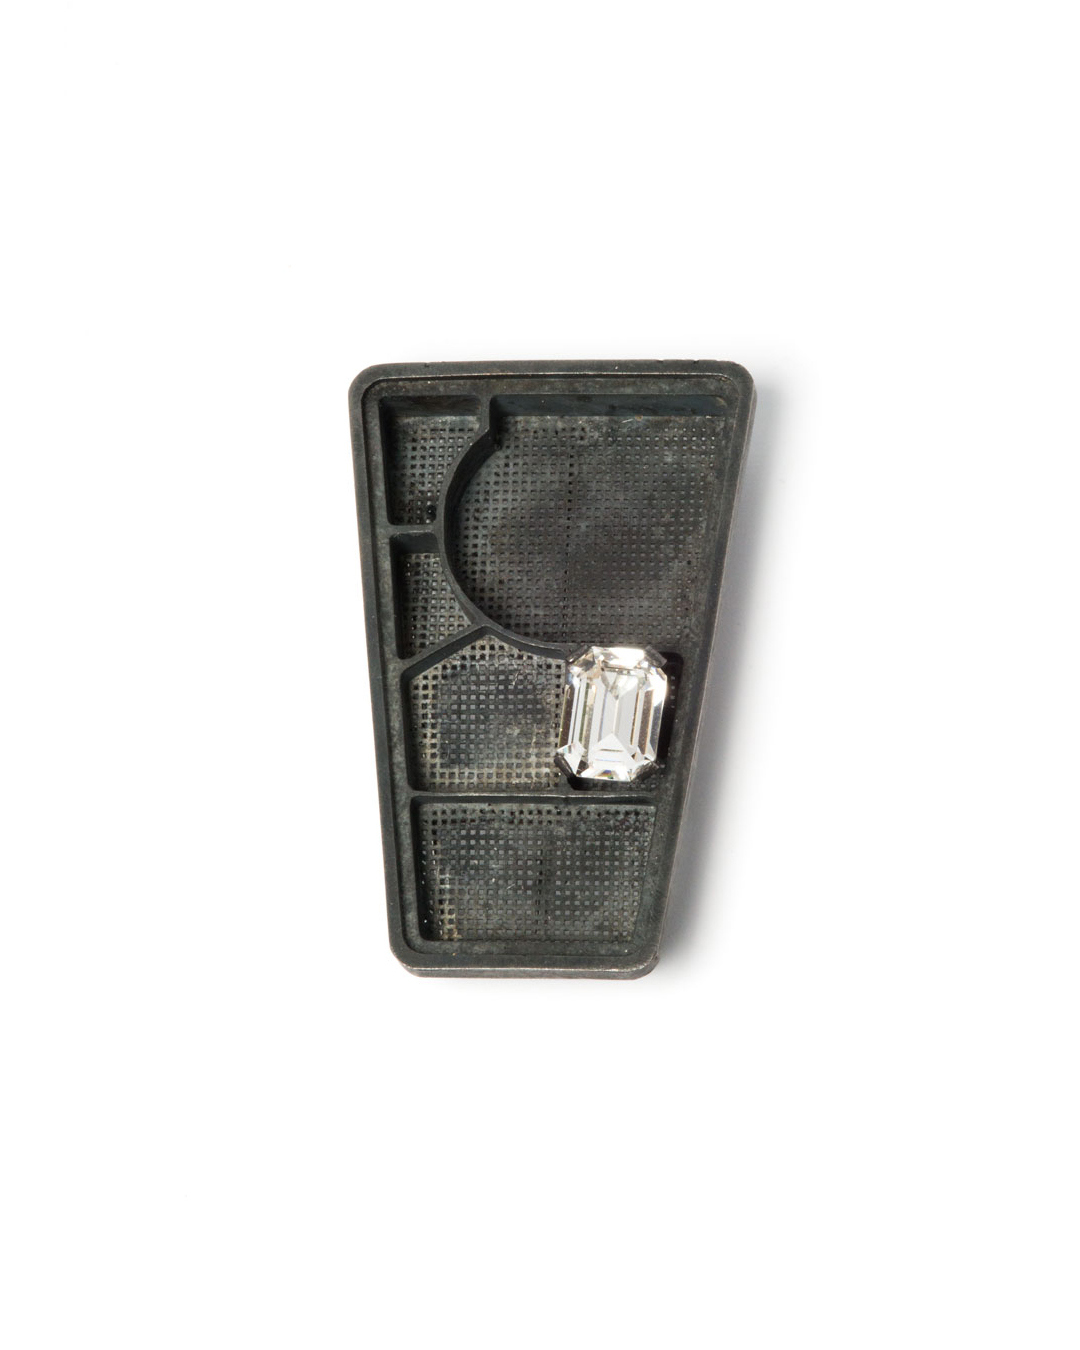 Winfried Krüger, untitled, 2008, brooch; oxidised silver, glass, 80 x 50 mm, €1940 (image 1 of 2)